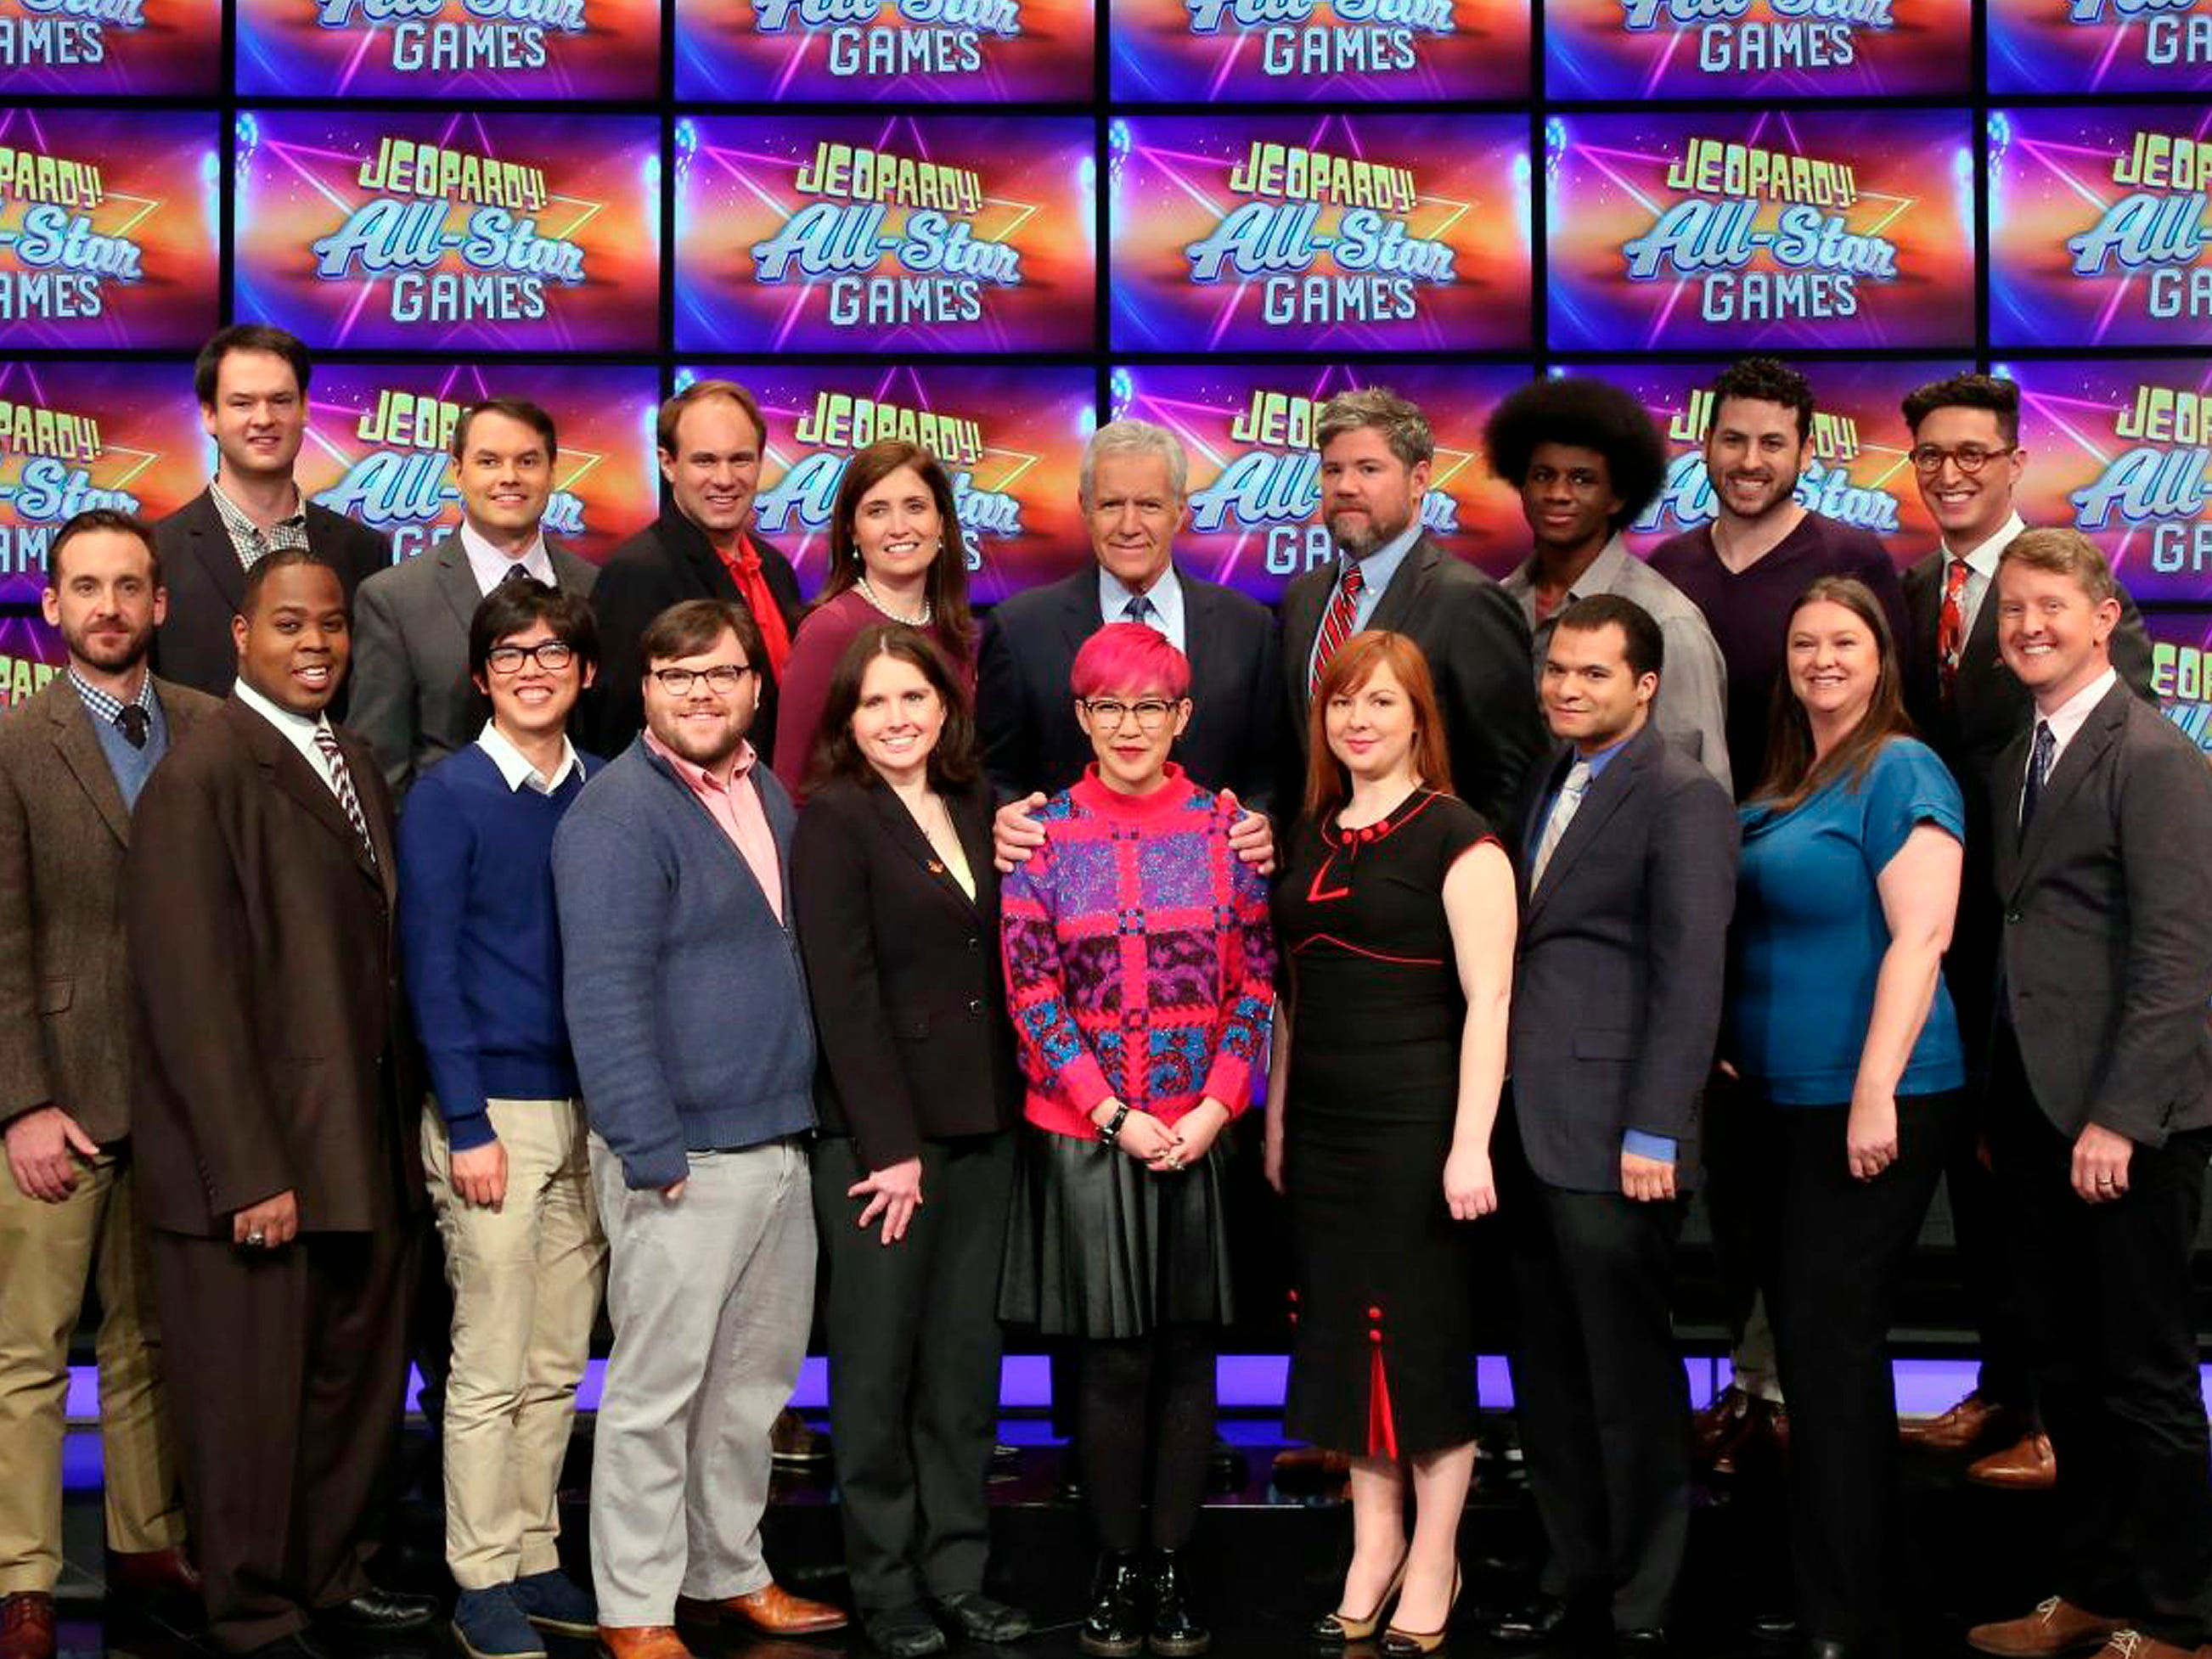 'Jeopardy!' champions unite: Quiz show embarks on first-ever team tournament Wednesday